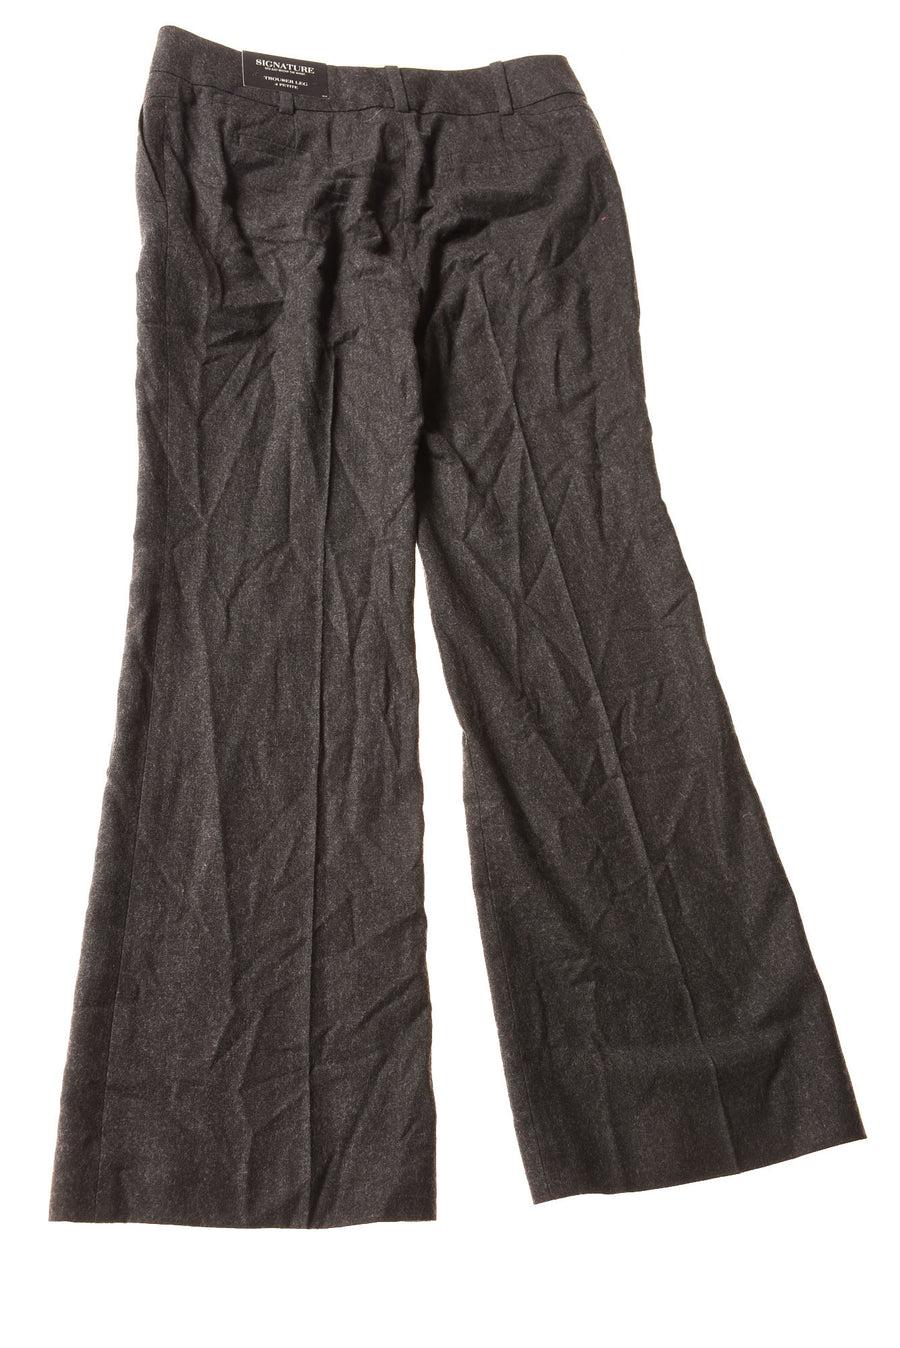 NEW Ann Taylor Women's Slacks 4 Gray